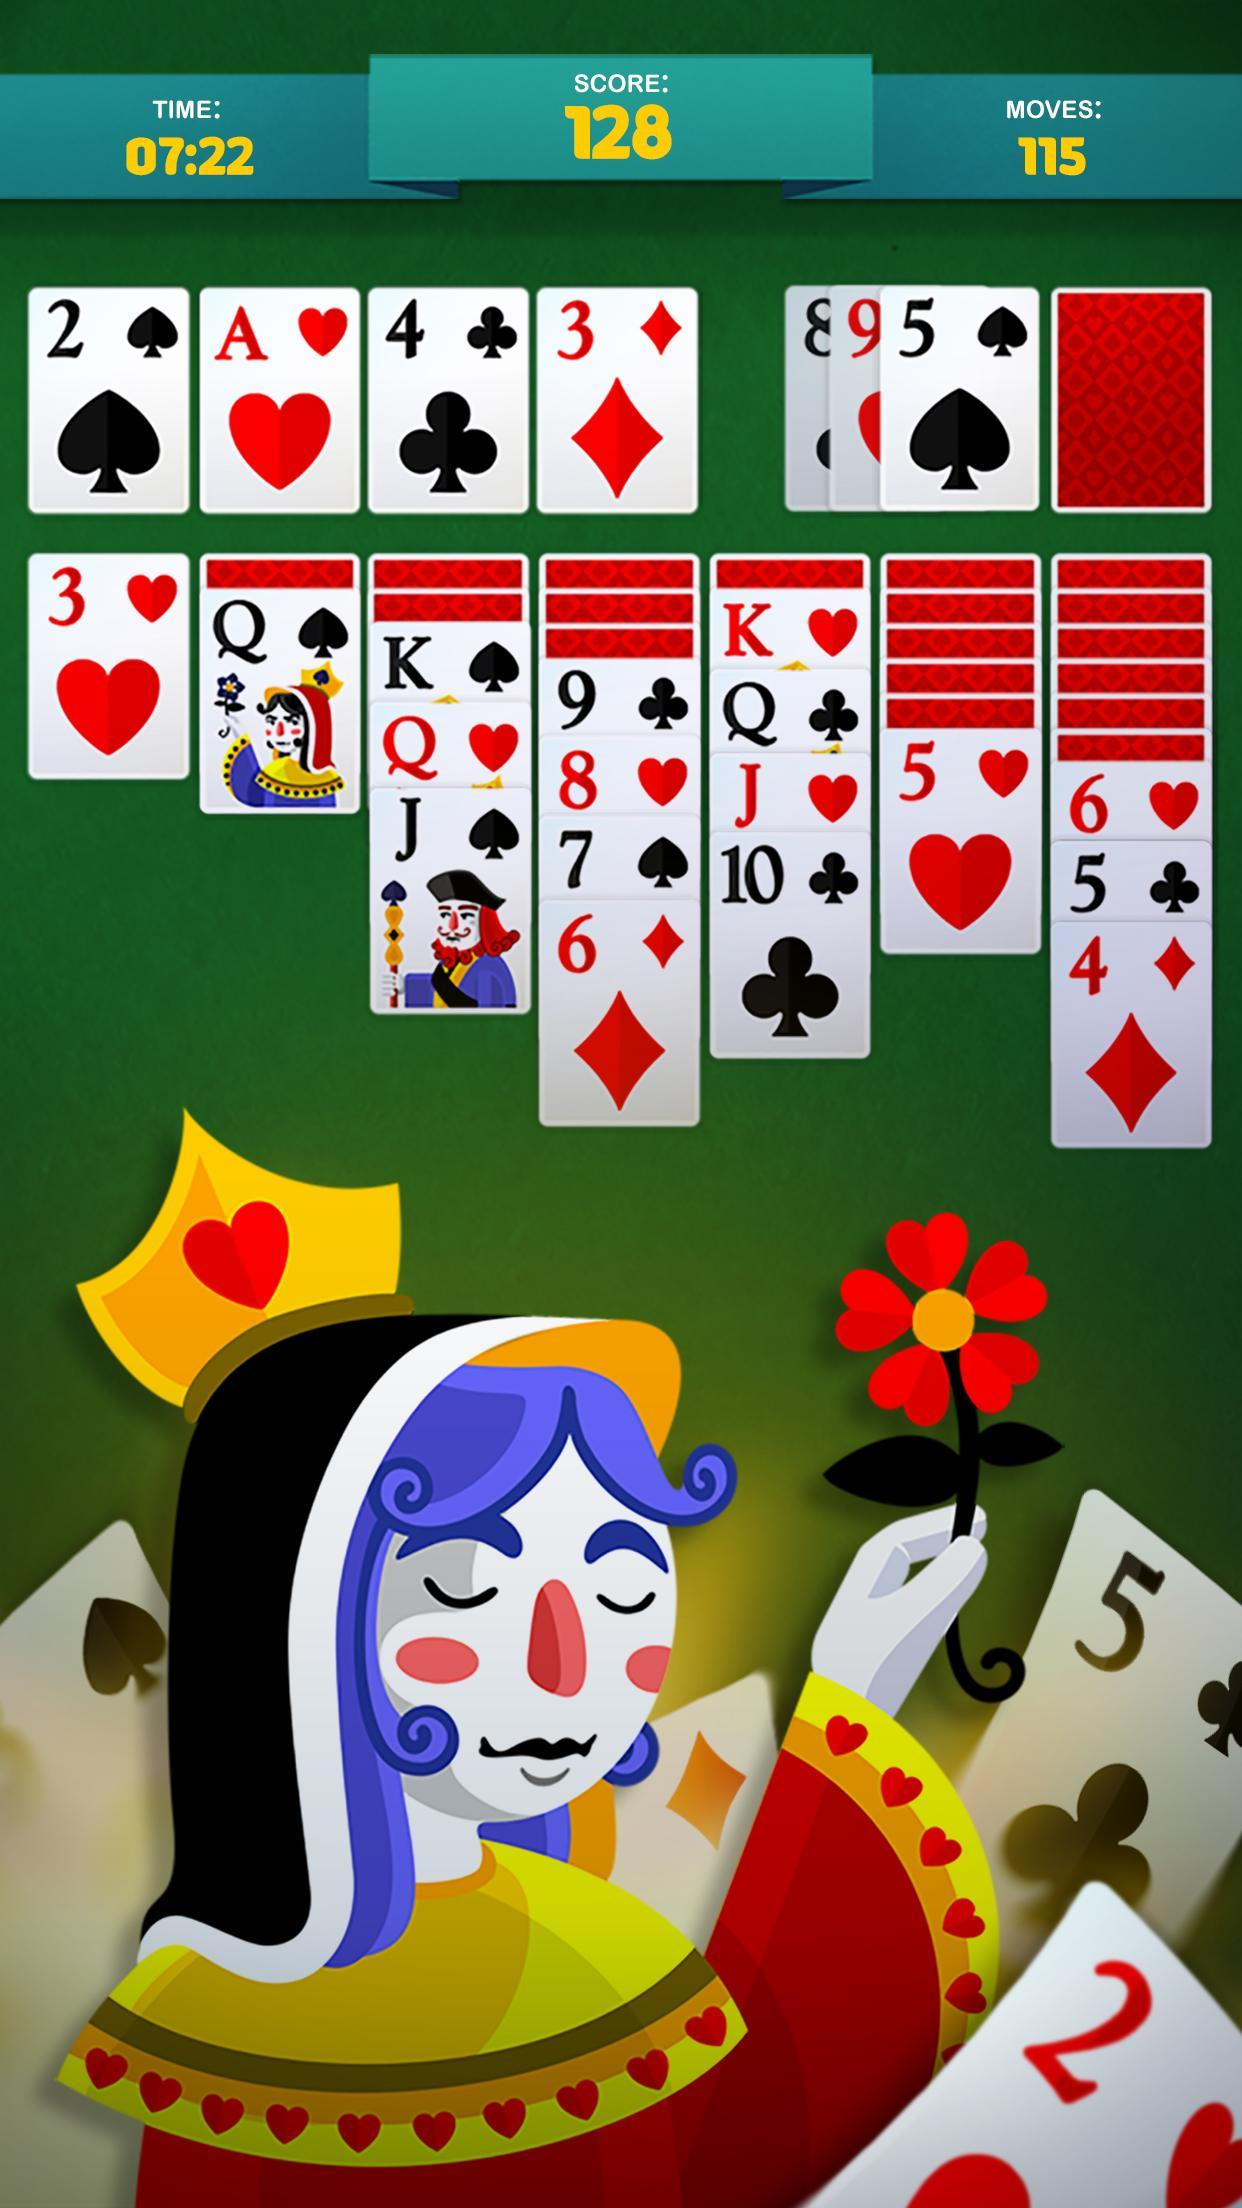 Solitaire Card Game Classic 1.0.16 Screenshot 5